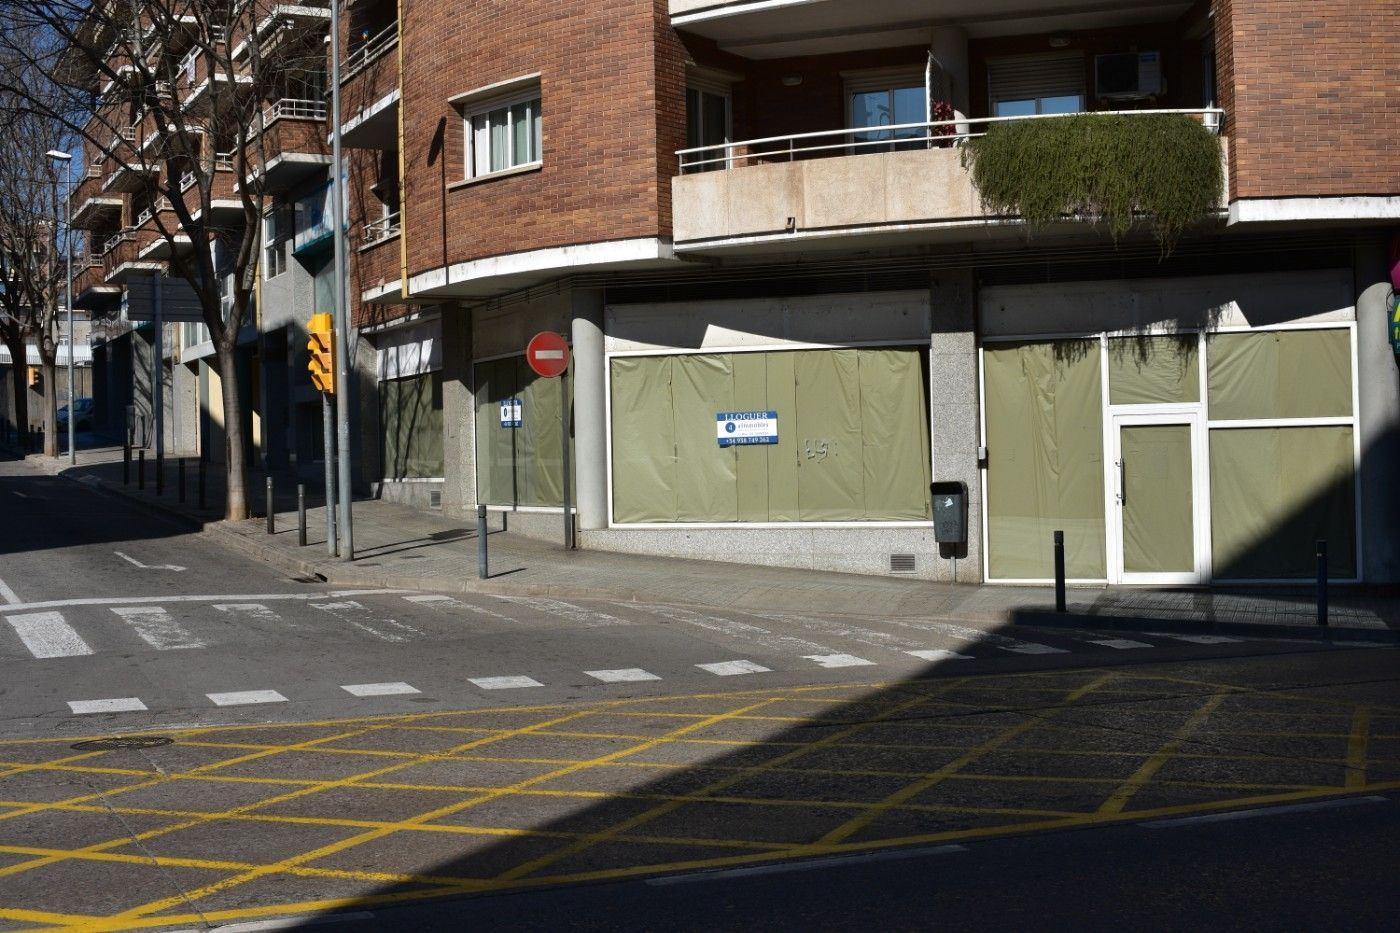 Lloguer Local Comercial  Carretera vic. Local cantoner  de 150m2.